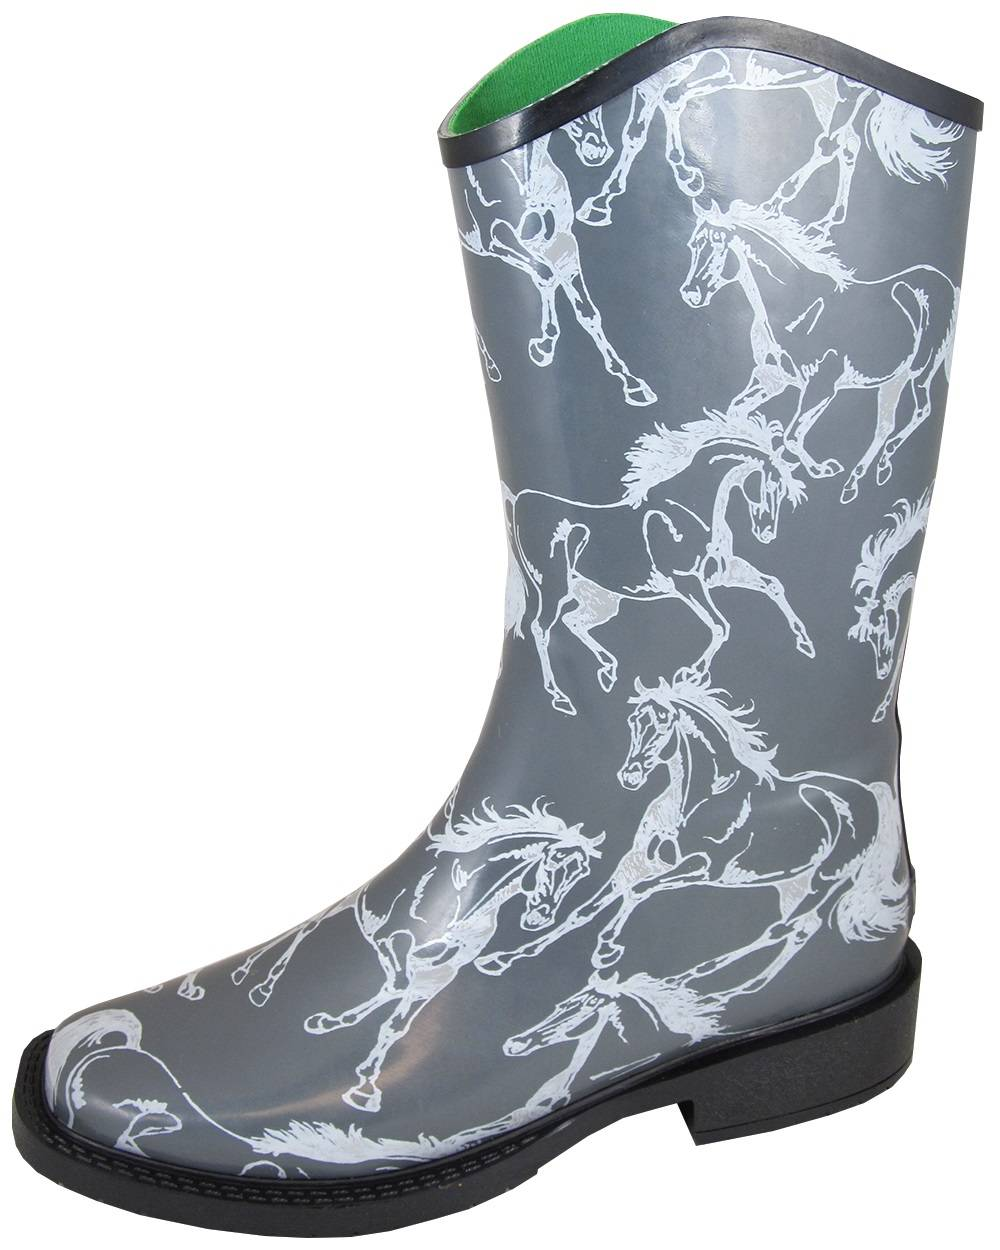 Smoky Mountain Ladies Ozark Boots - Grey Horses